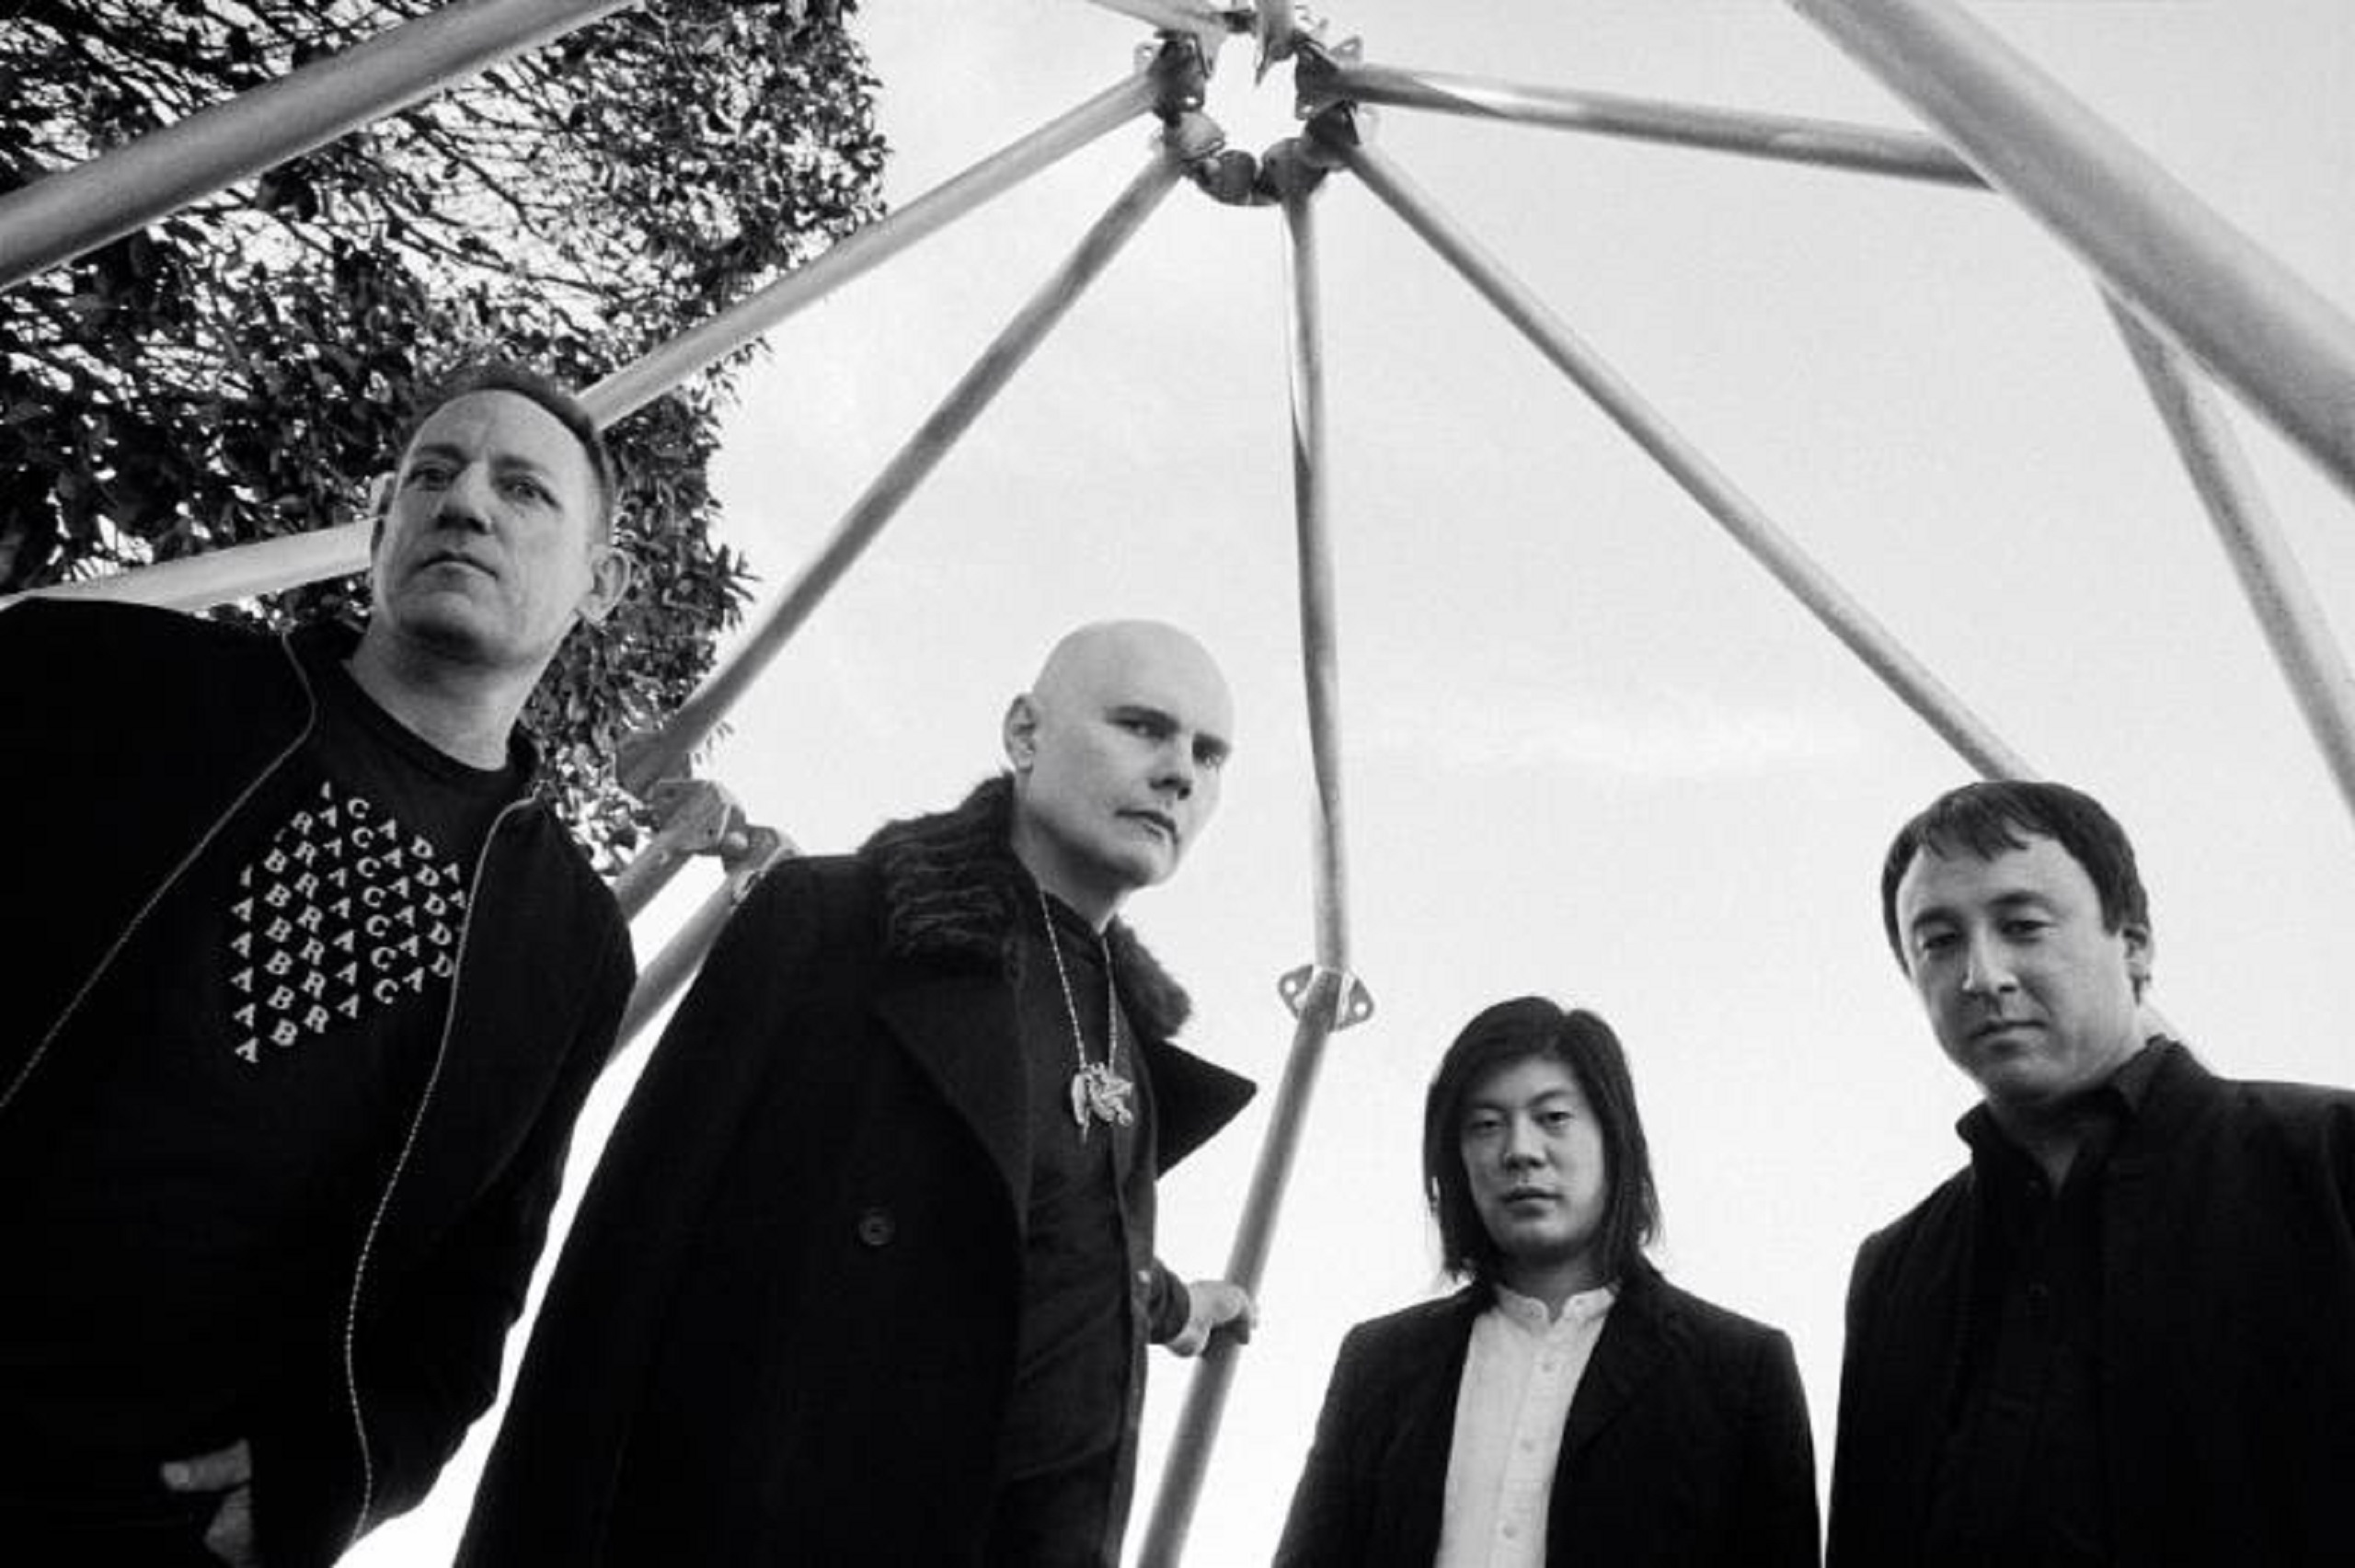 The Smashing Pumpkins Featuring Original Members Announce First Tour Since 2000